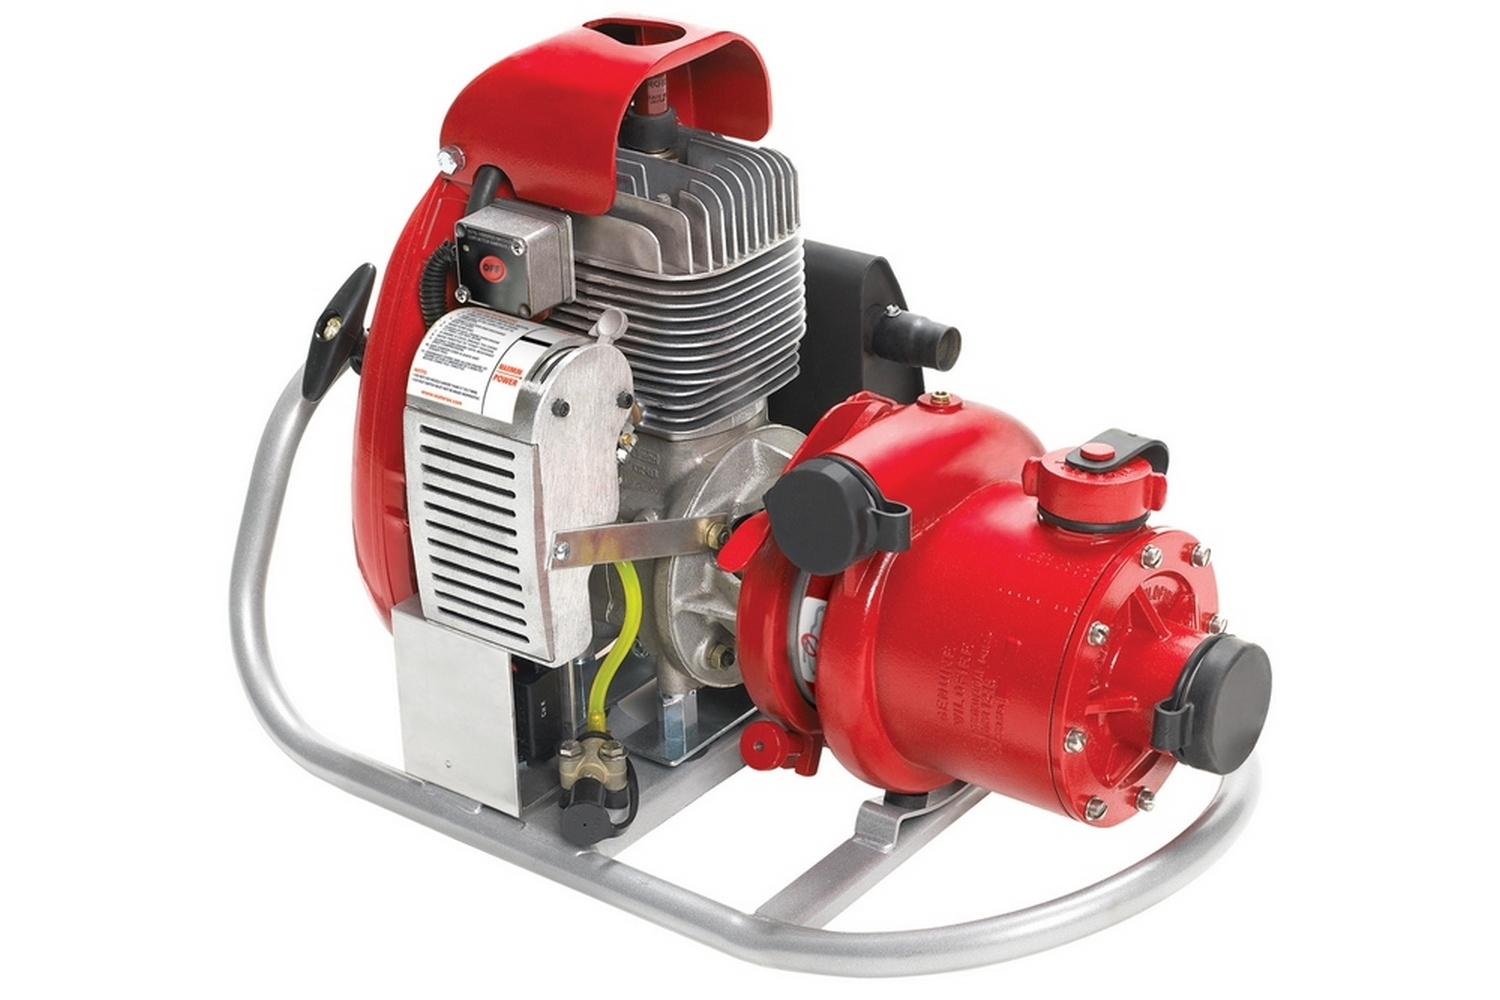 waterax mark 3 portable high pressure fire pump rh abcfireandsafety com Mark 3 Pump Breakdown Mark 3 Pump Parts